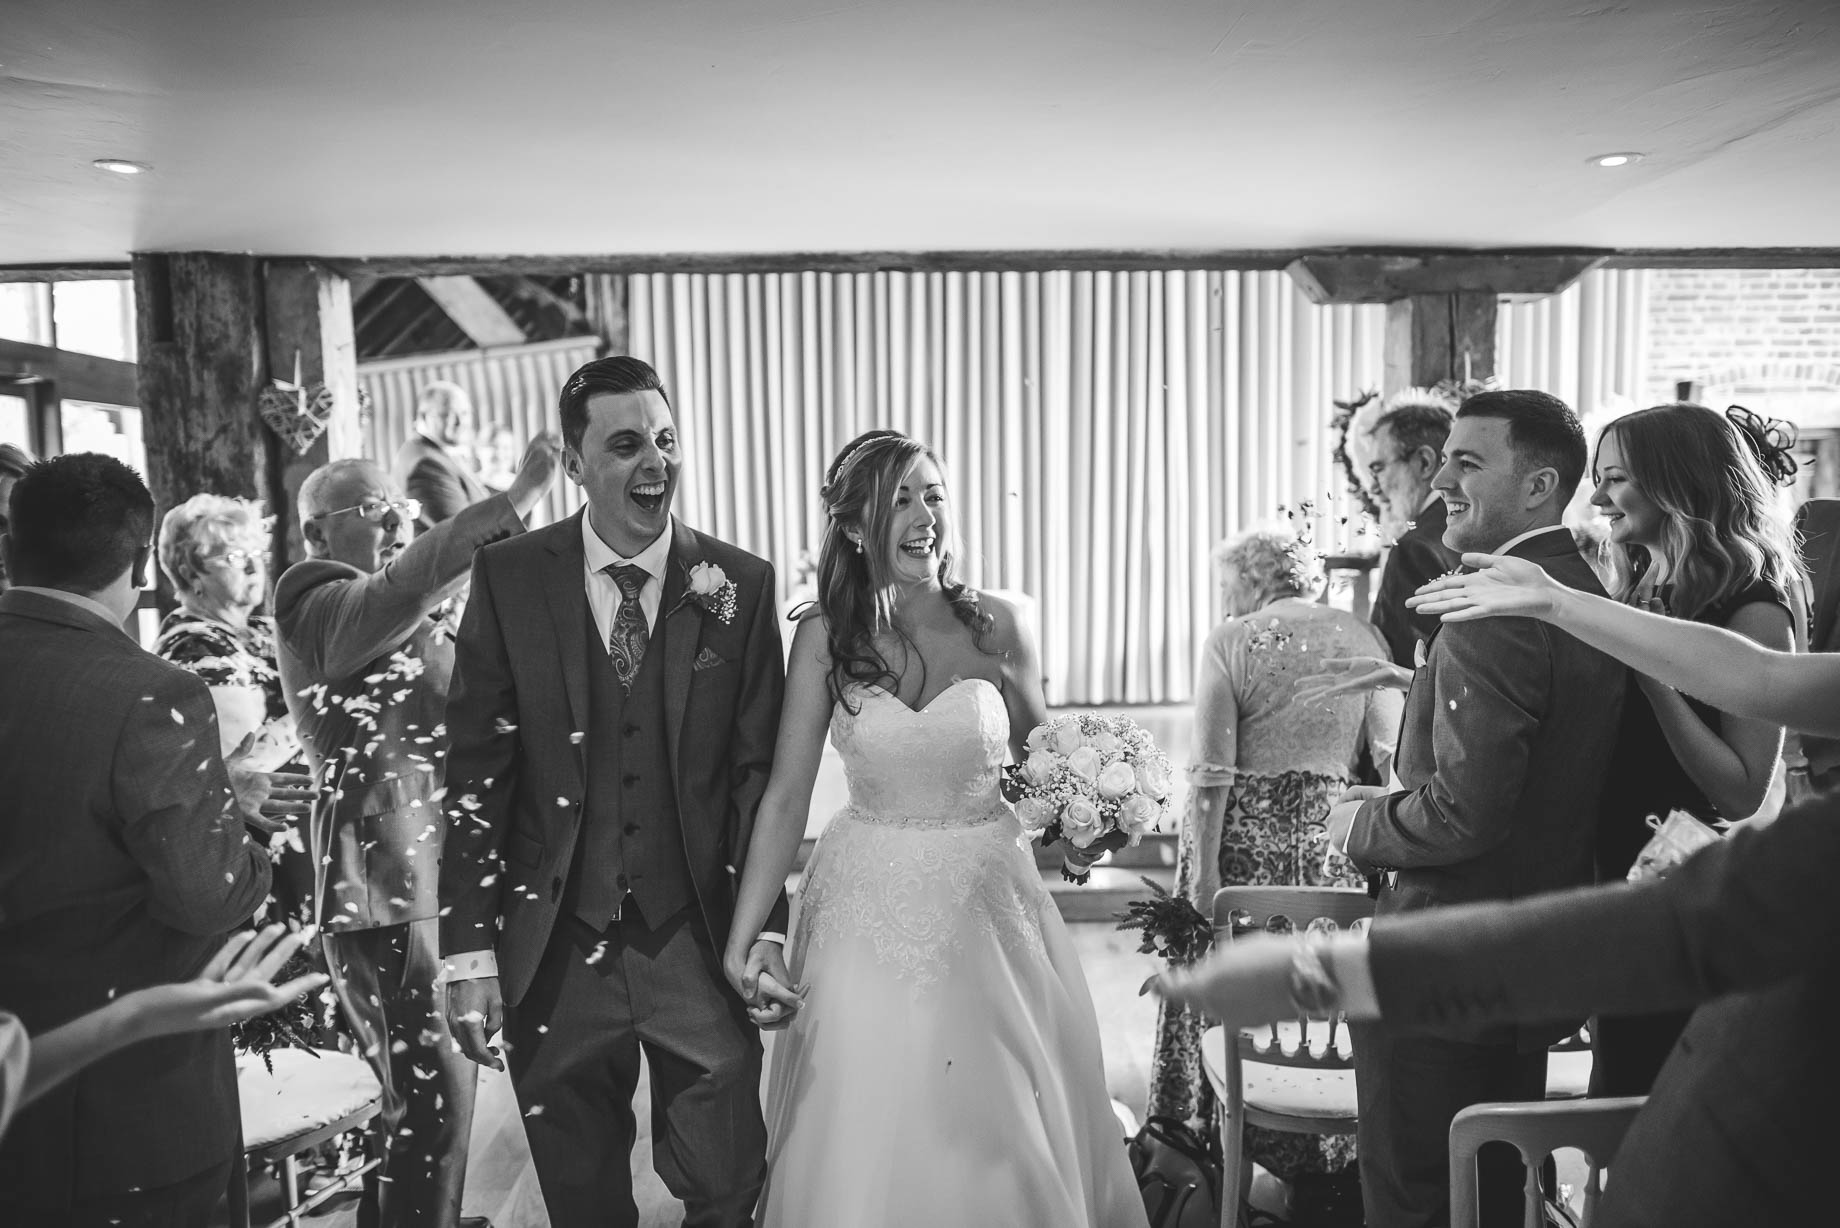 Bury Court Barn wedding photography - Guy Collier - Kirsty and Lewis (67 of 150)